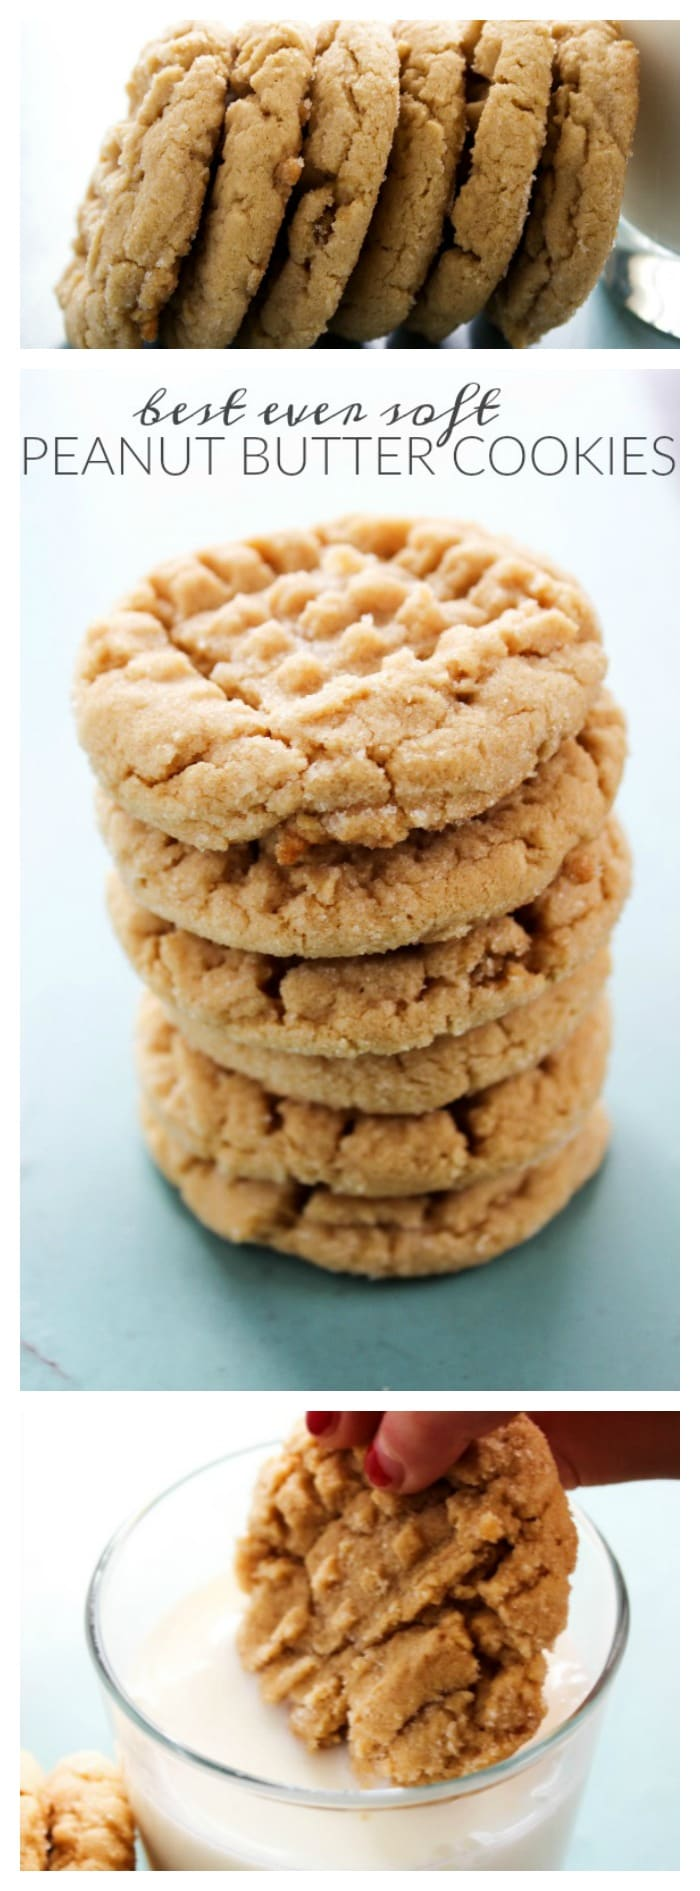 Best Ever Soft Peanut Butter Cookies - A Dash of Sanity